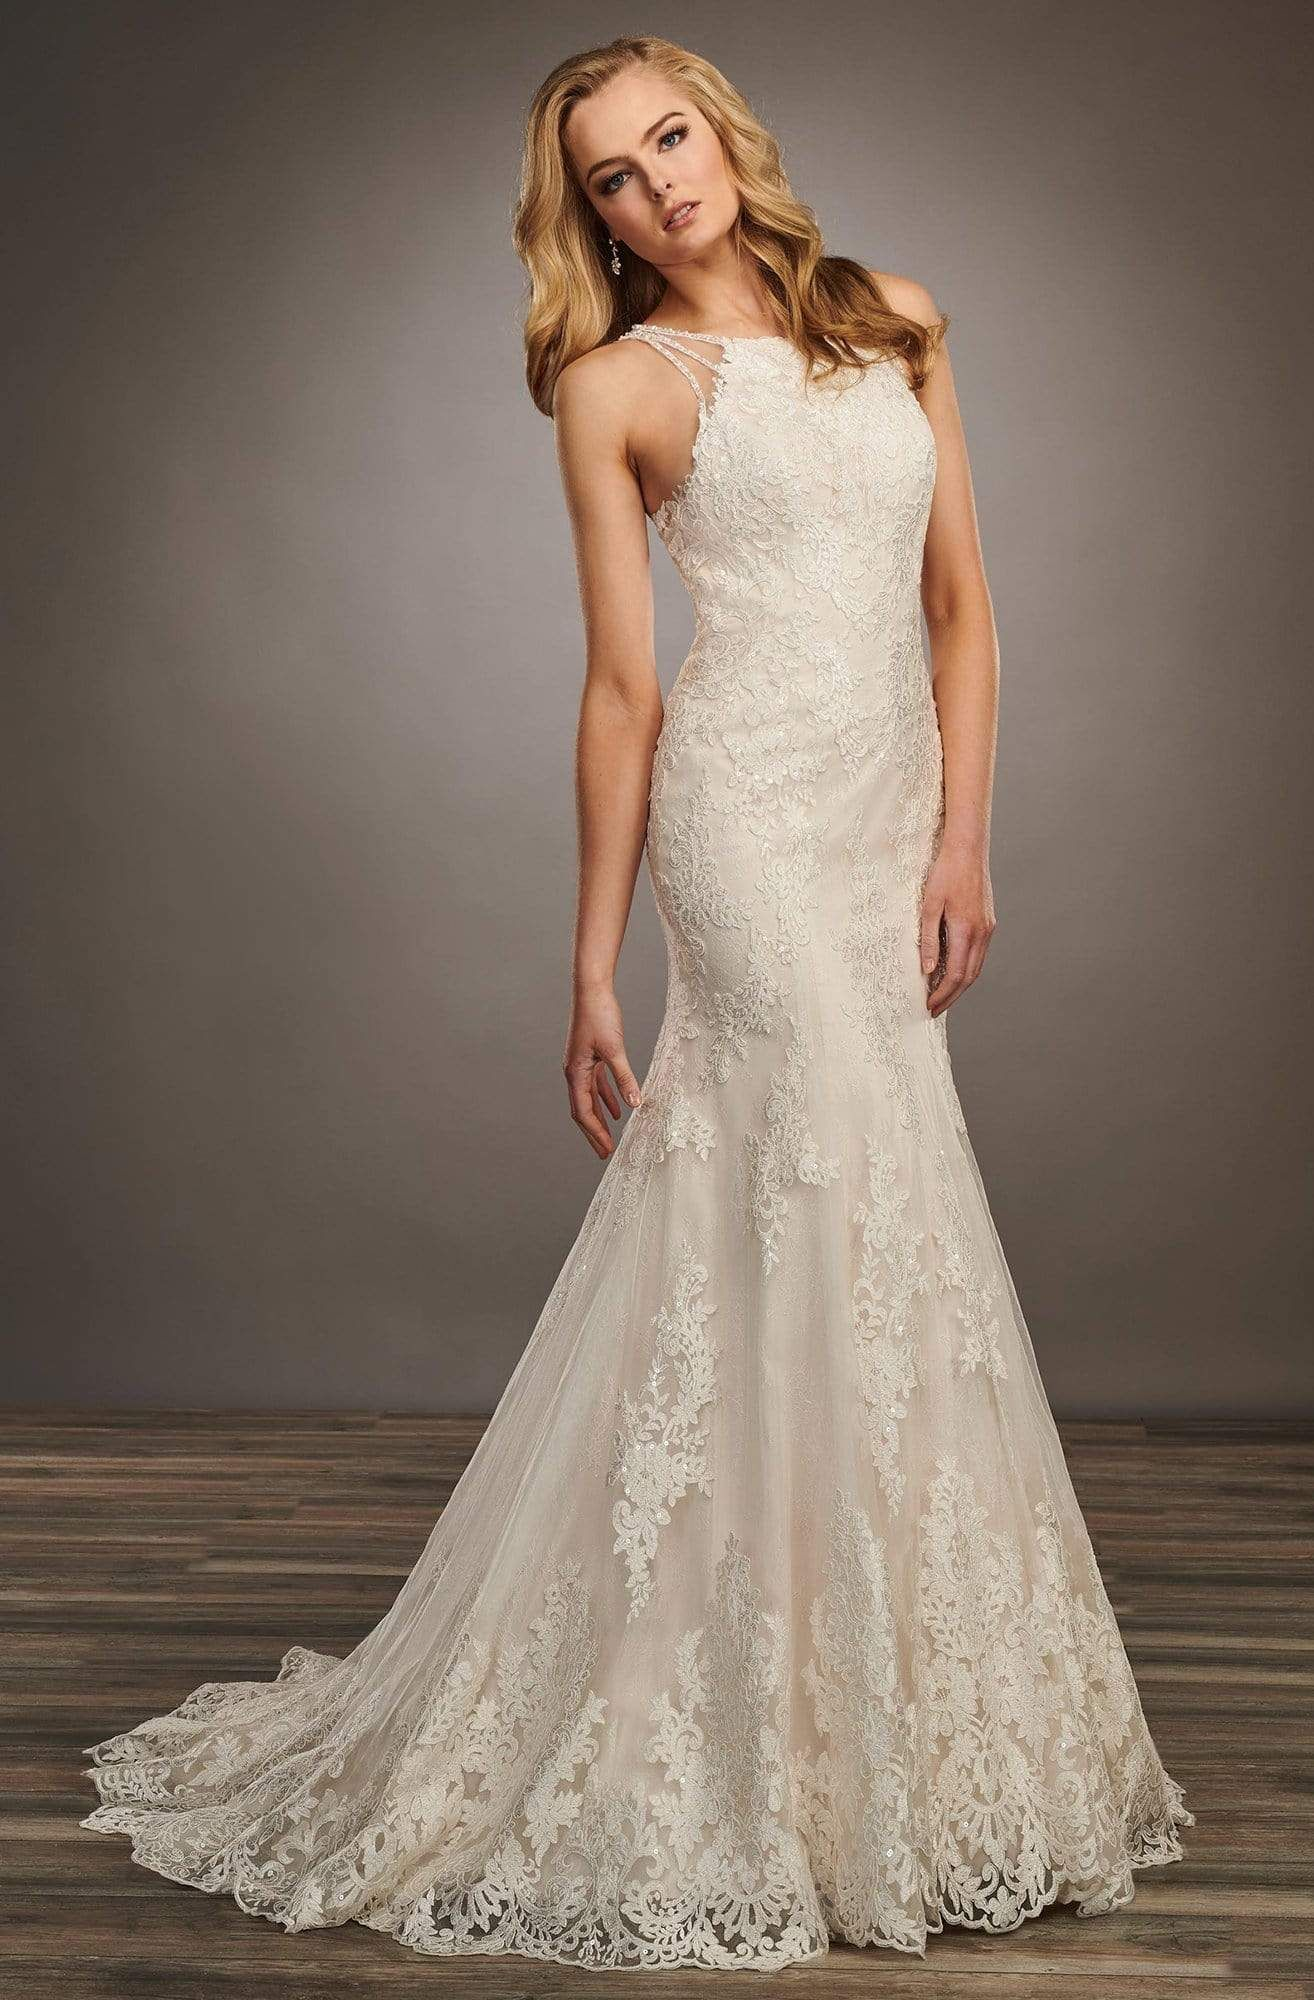 Mary S Bridal Mb4063 Tulle Lace Halter Neck Mermaid Wedding Dress Wedding Dress Necklines Wedding Dress Styles Chart Mermaid Wedding Dress [ 2000 x 1314 Pixel ]